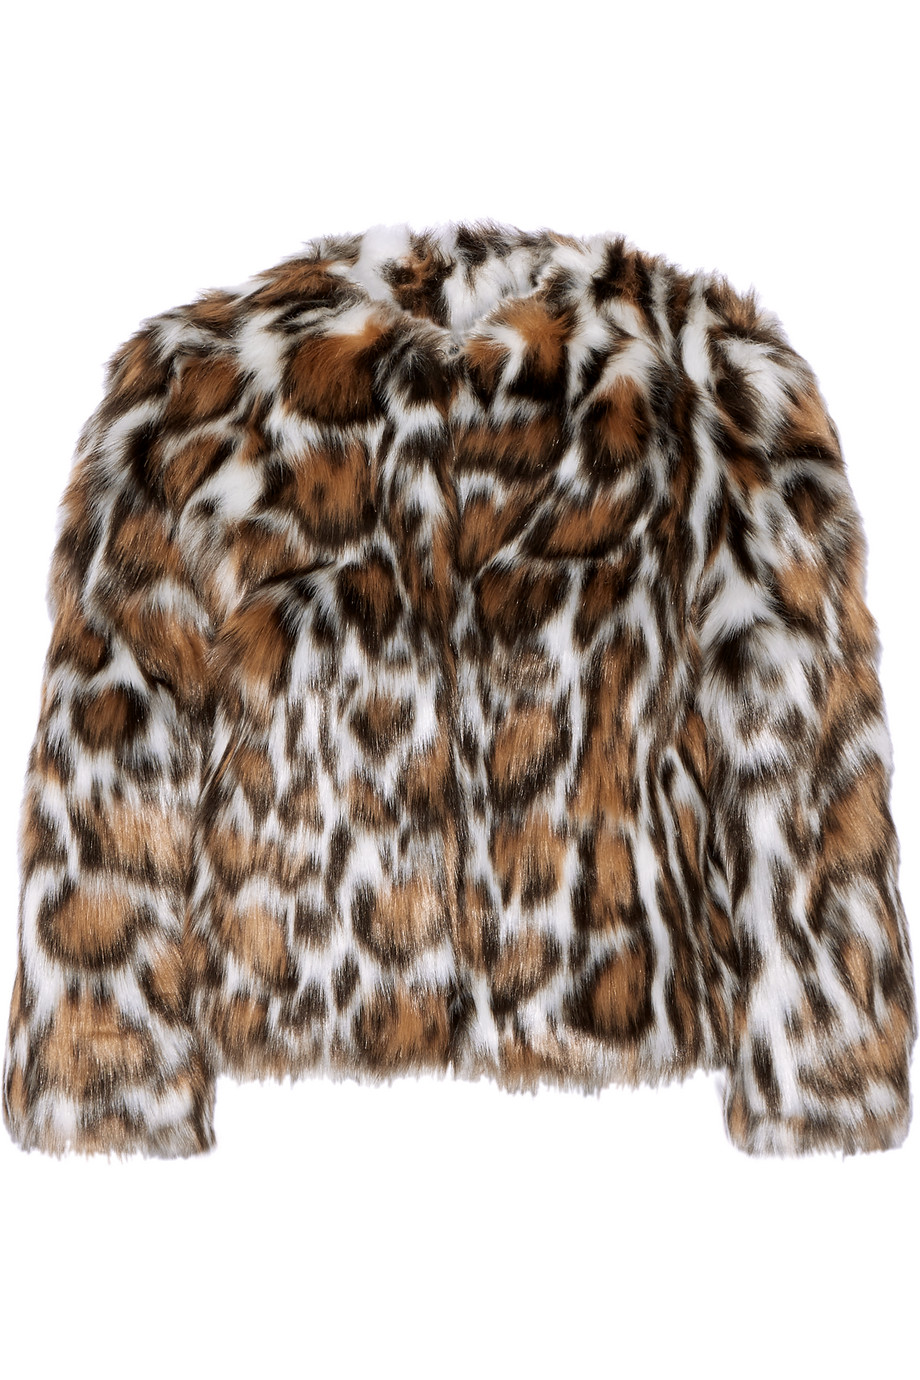 Moschino Cropped Leopard-Print Faux Fur Coat, Size: 38